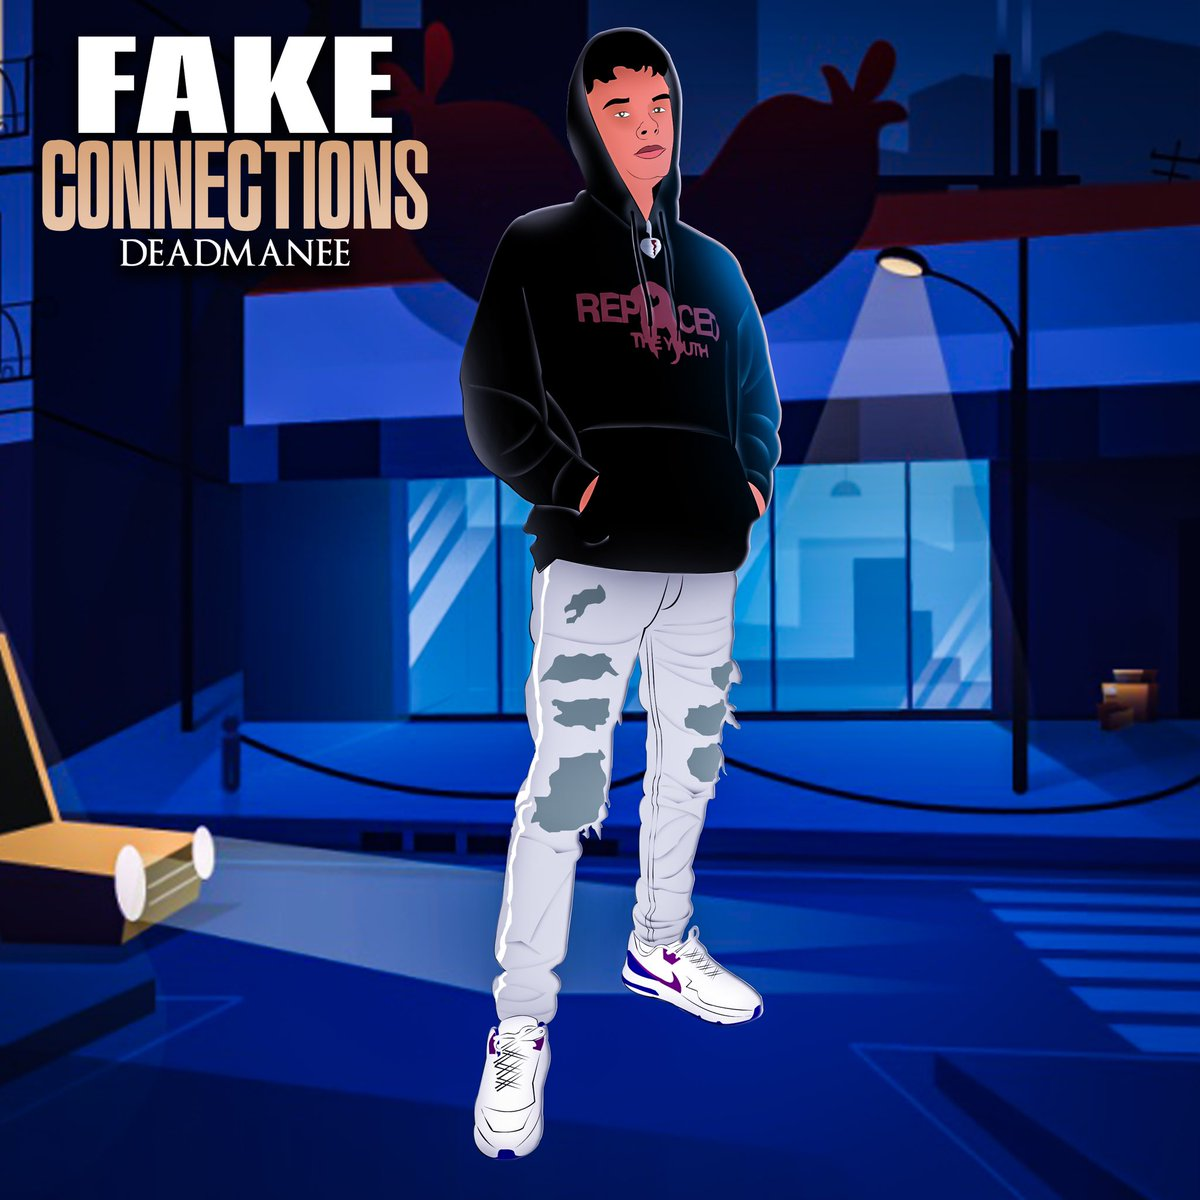 🚾 FAKE CONNECTIONS 🚾  #new #Song Dropping FRIDAY💨 ☠️ ☠️ #cover #covid19 #art #producer #collab #memes #trending #pop #vibes #party https://t.co/e6EtH3SHt5